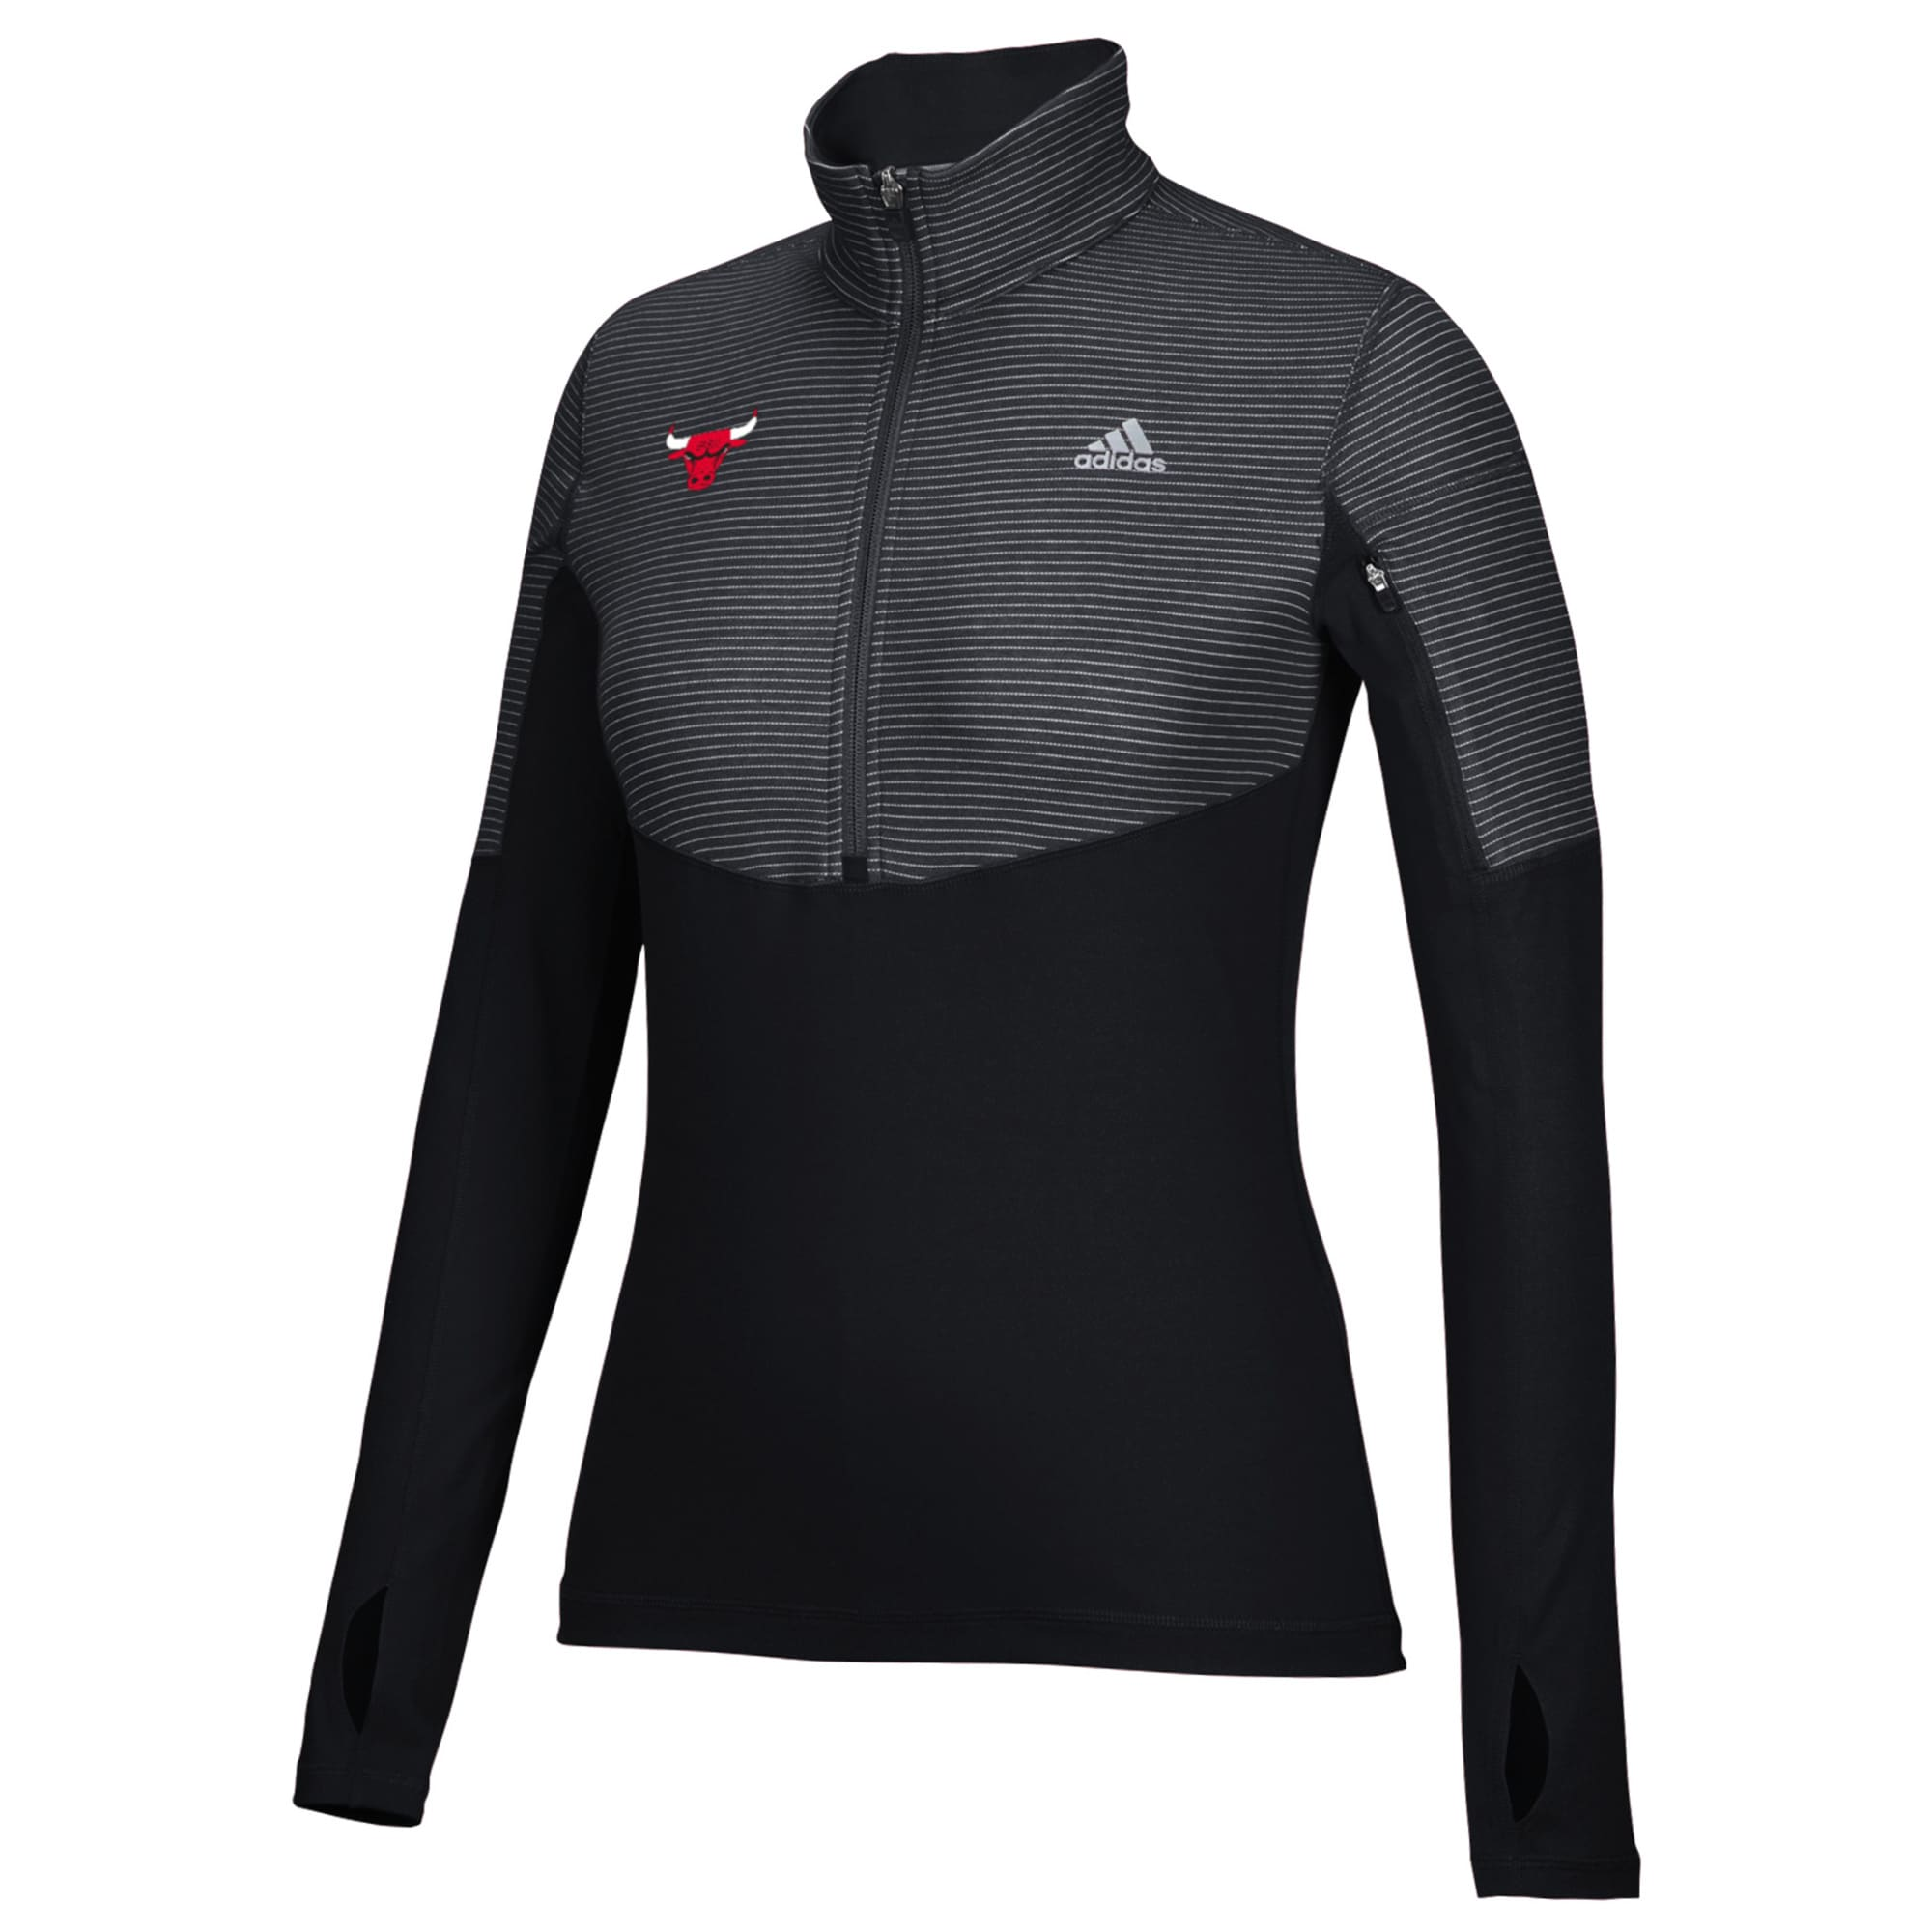 Chicago Bulls adidas Women's Team Logo Lightweight Performance Half-Zip Jacket - Black